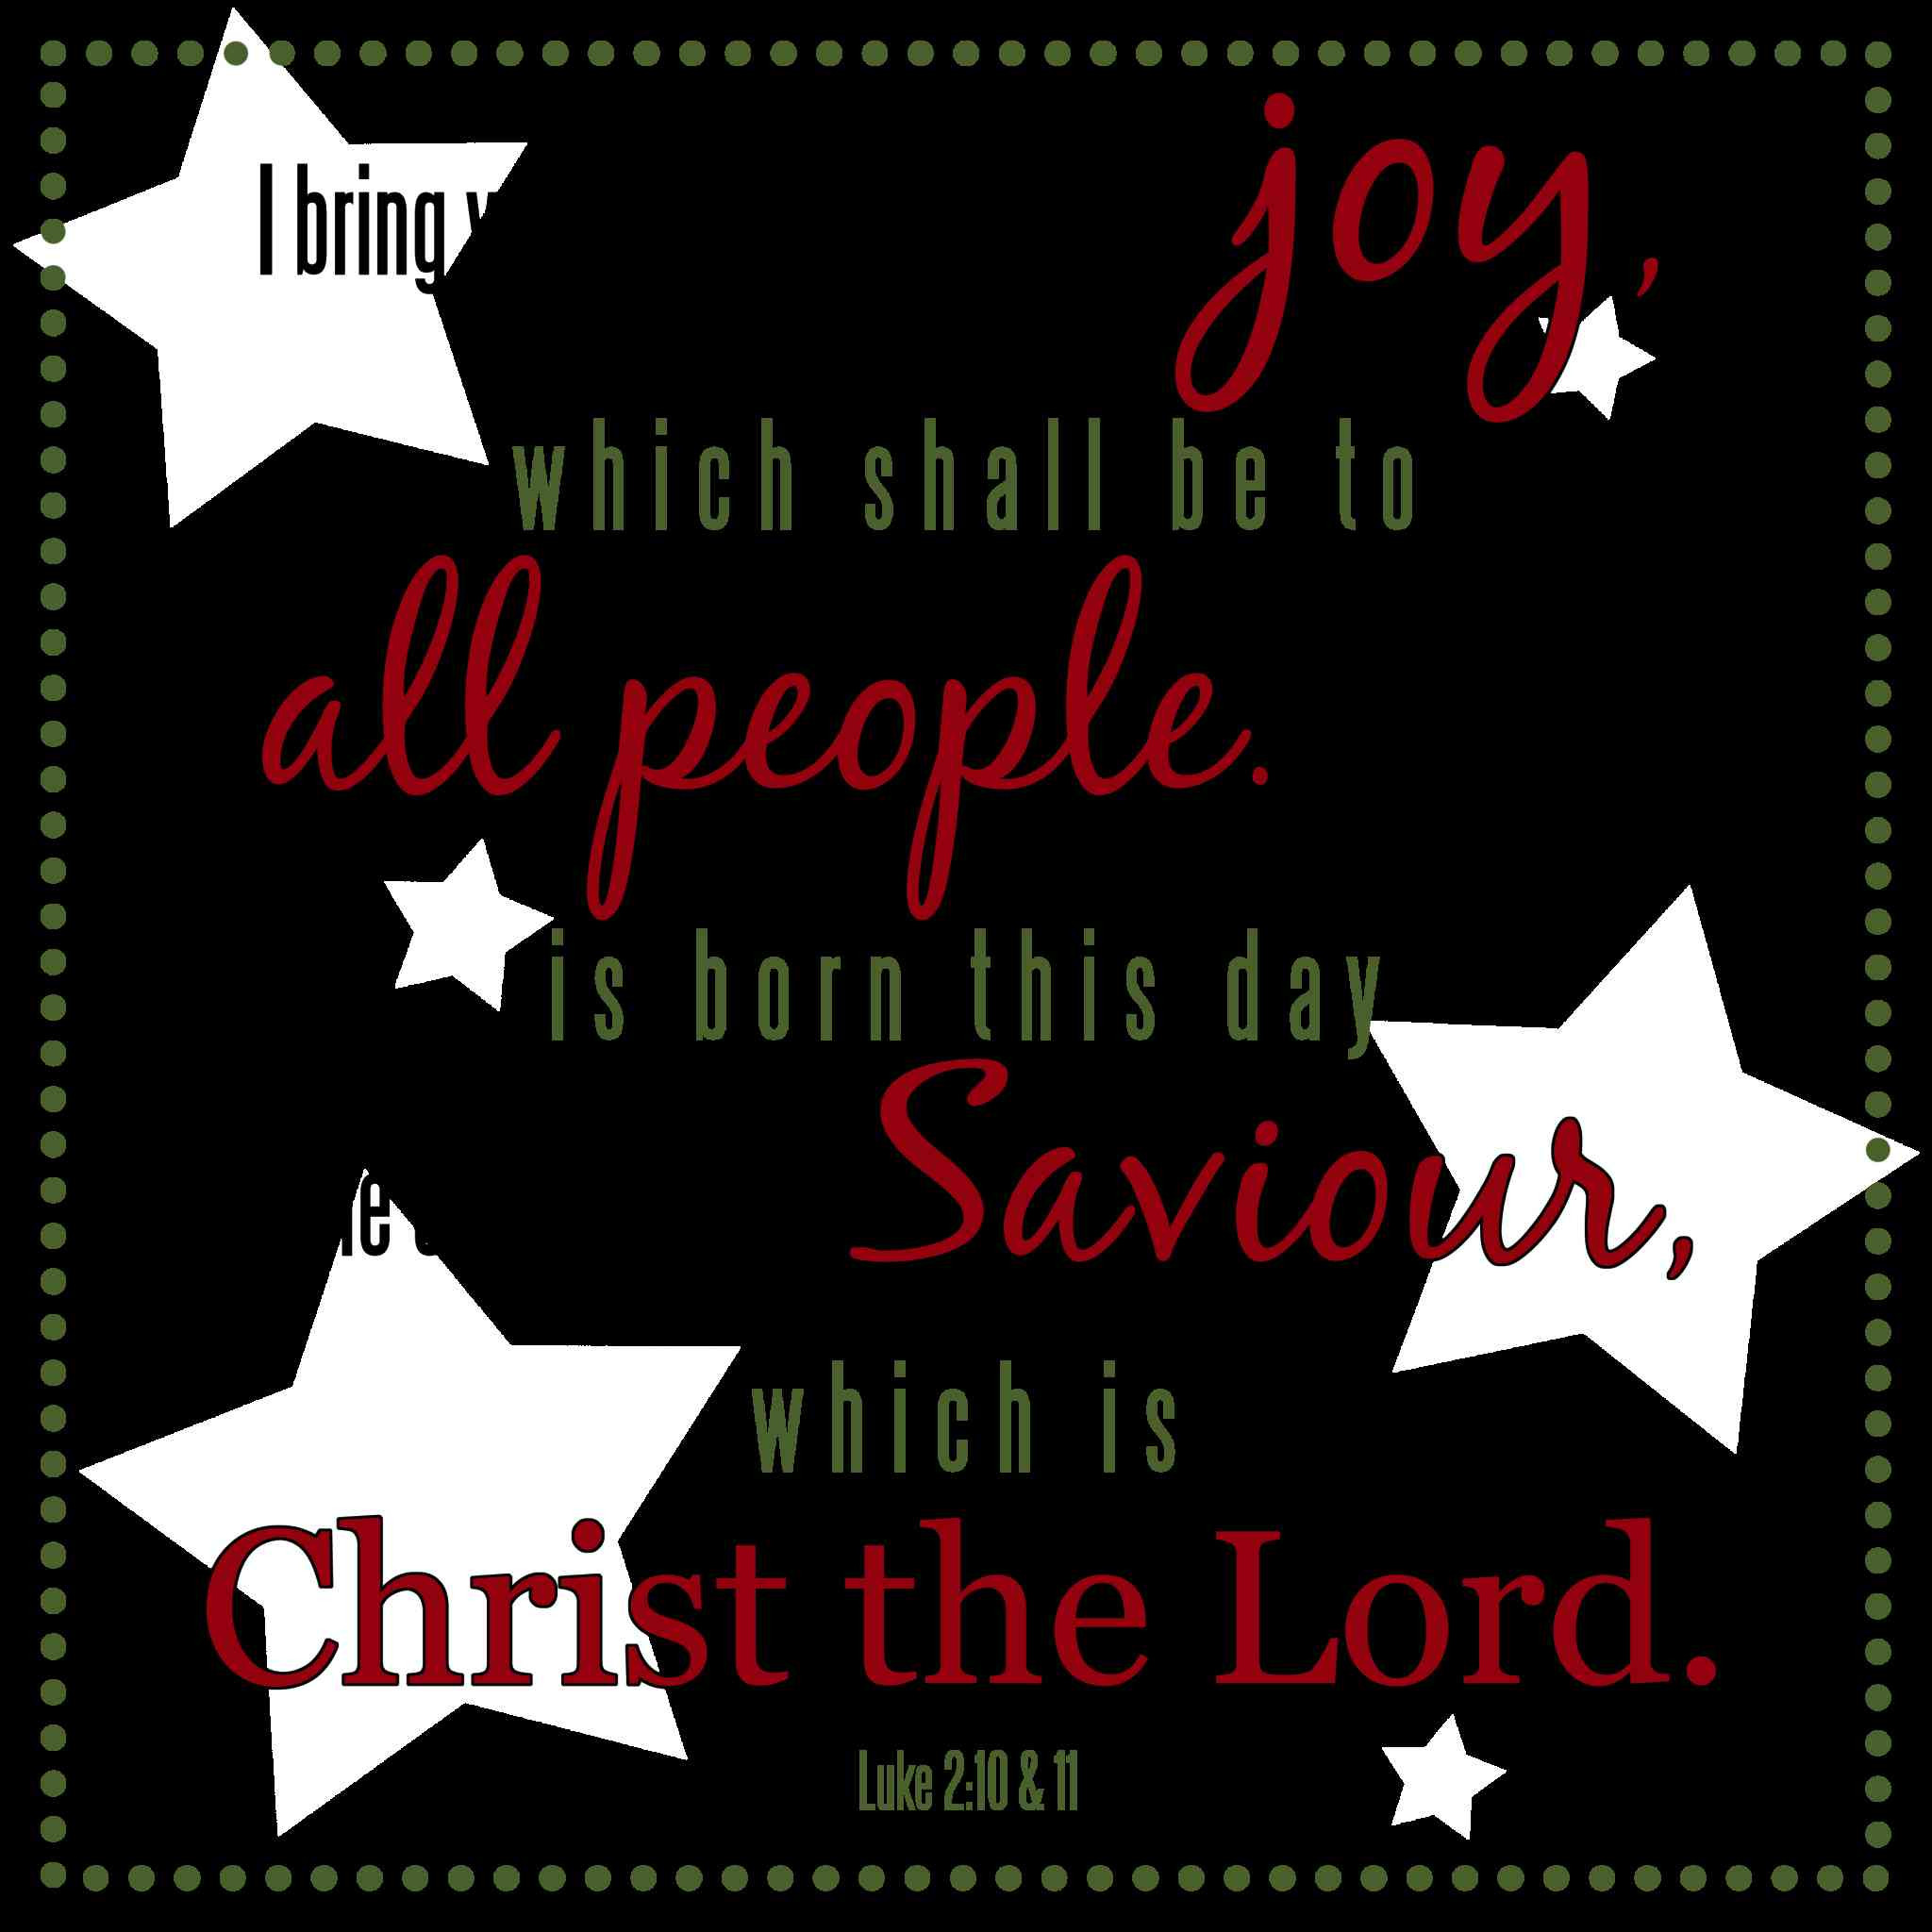 Bible Christmas Quotes  Christmas Bible Verses For Cards Kids KJV Daughter and